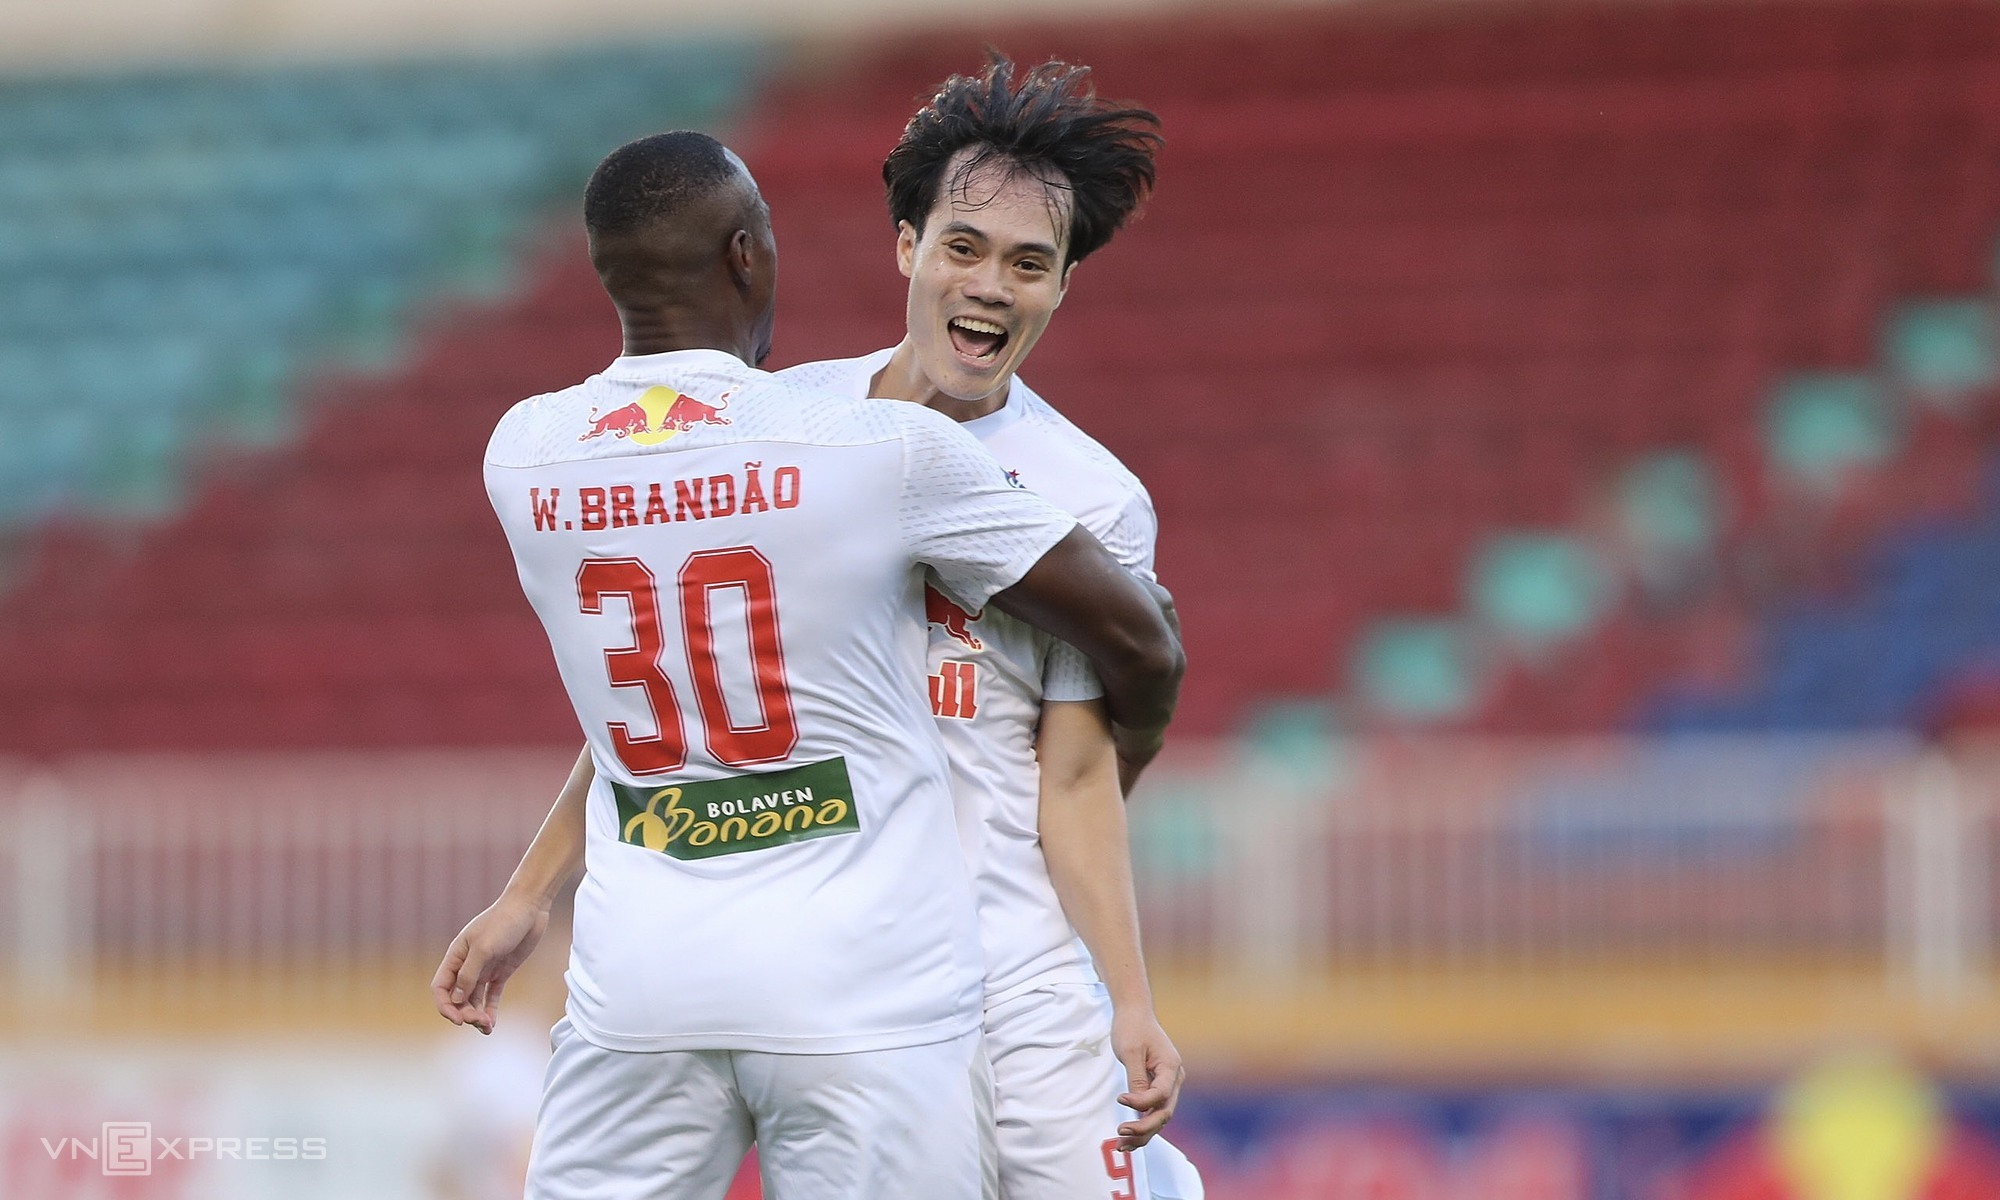 Nguyen Van Toan celebrates a goal with his teammate against Binh Duong on May 2, 2021. Photo by VnExpress/Duc Dong.